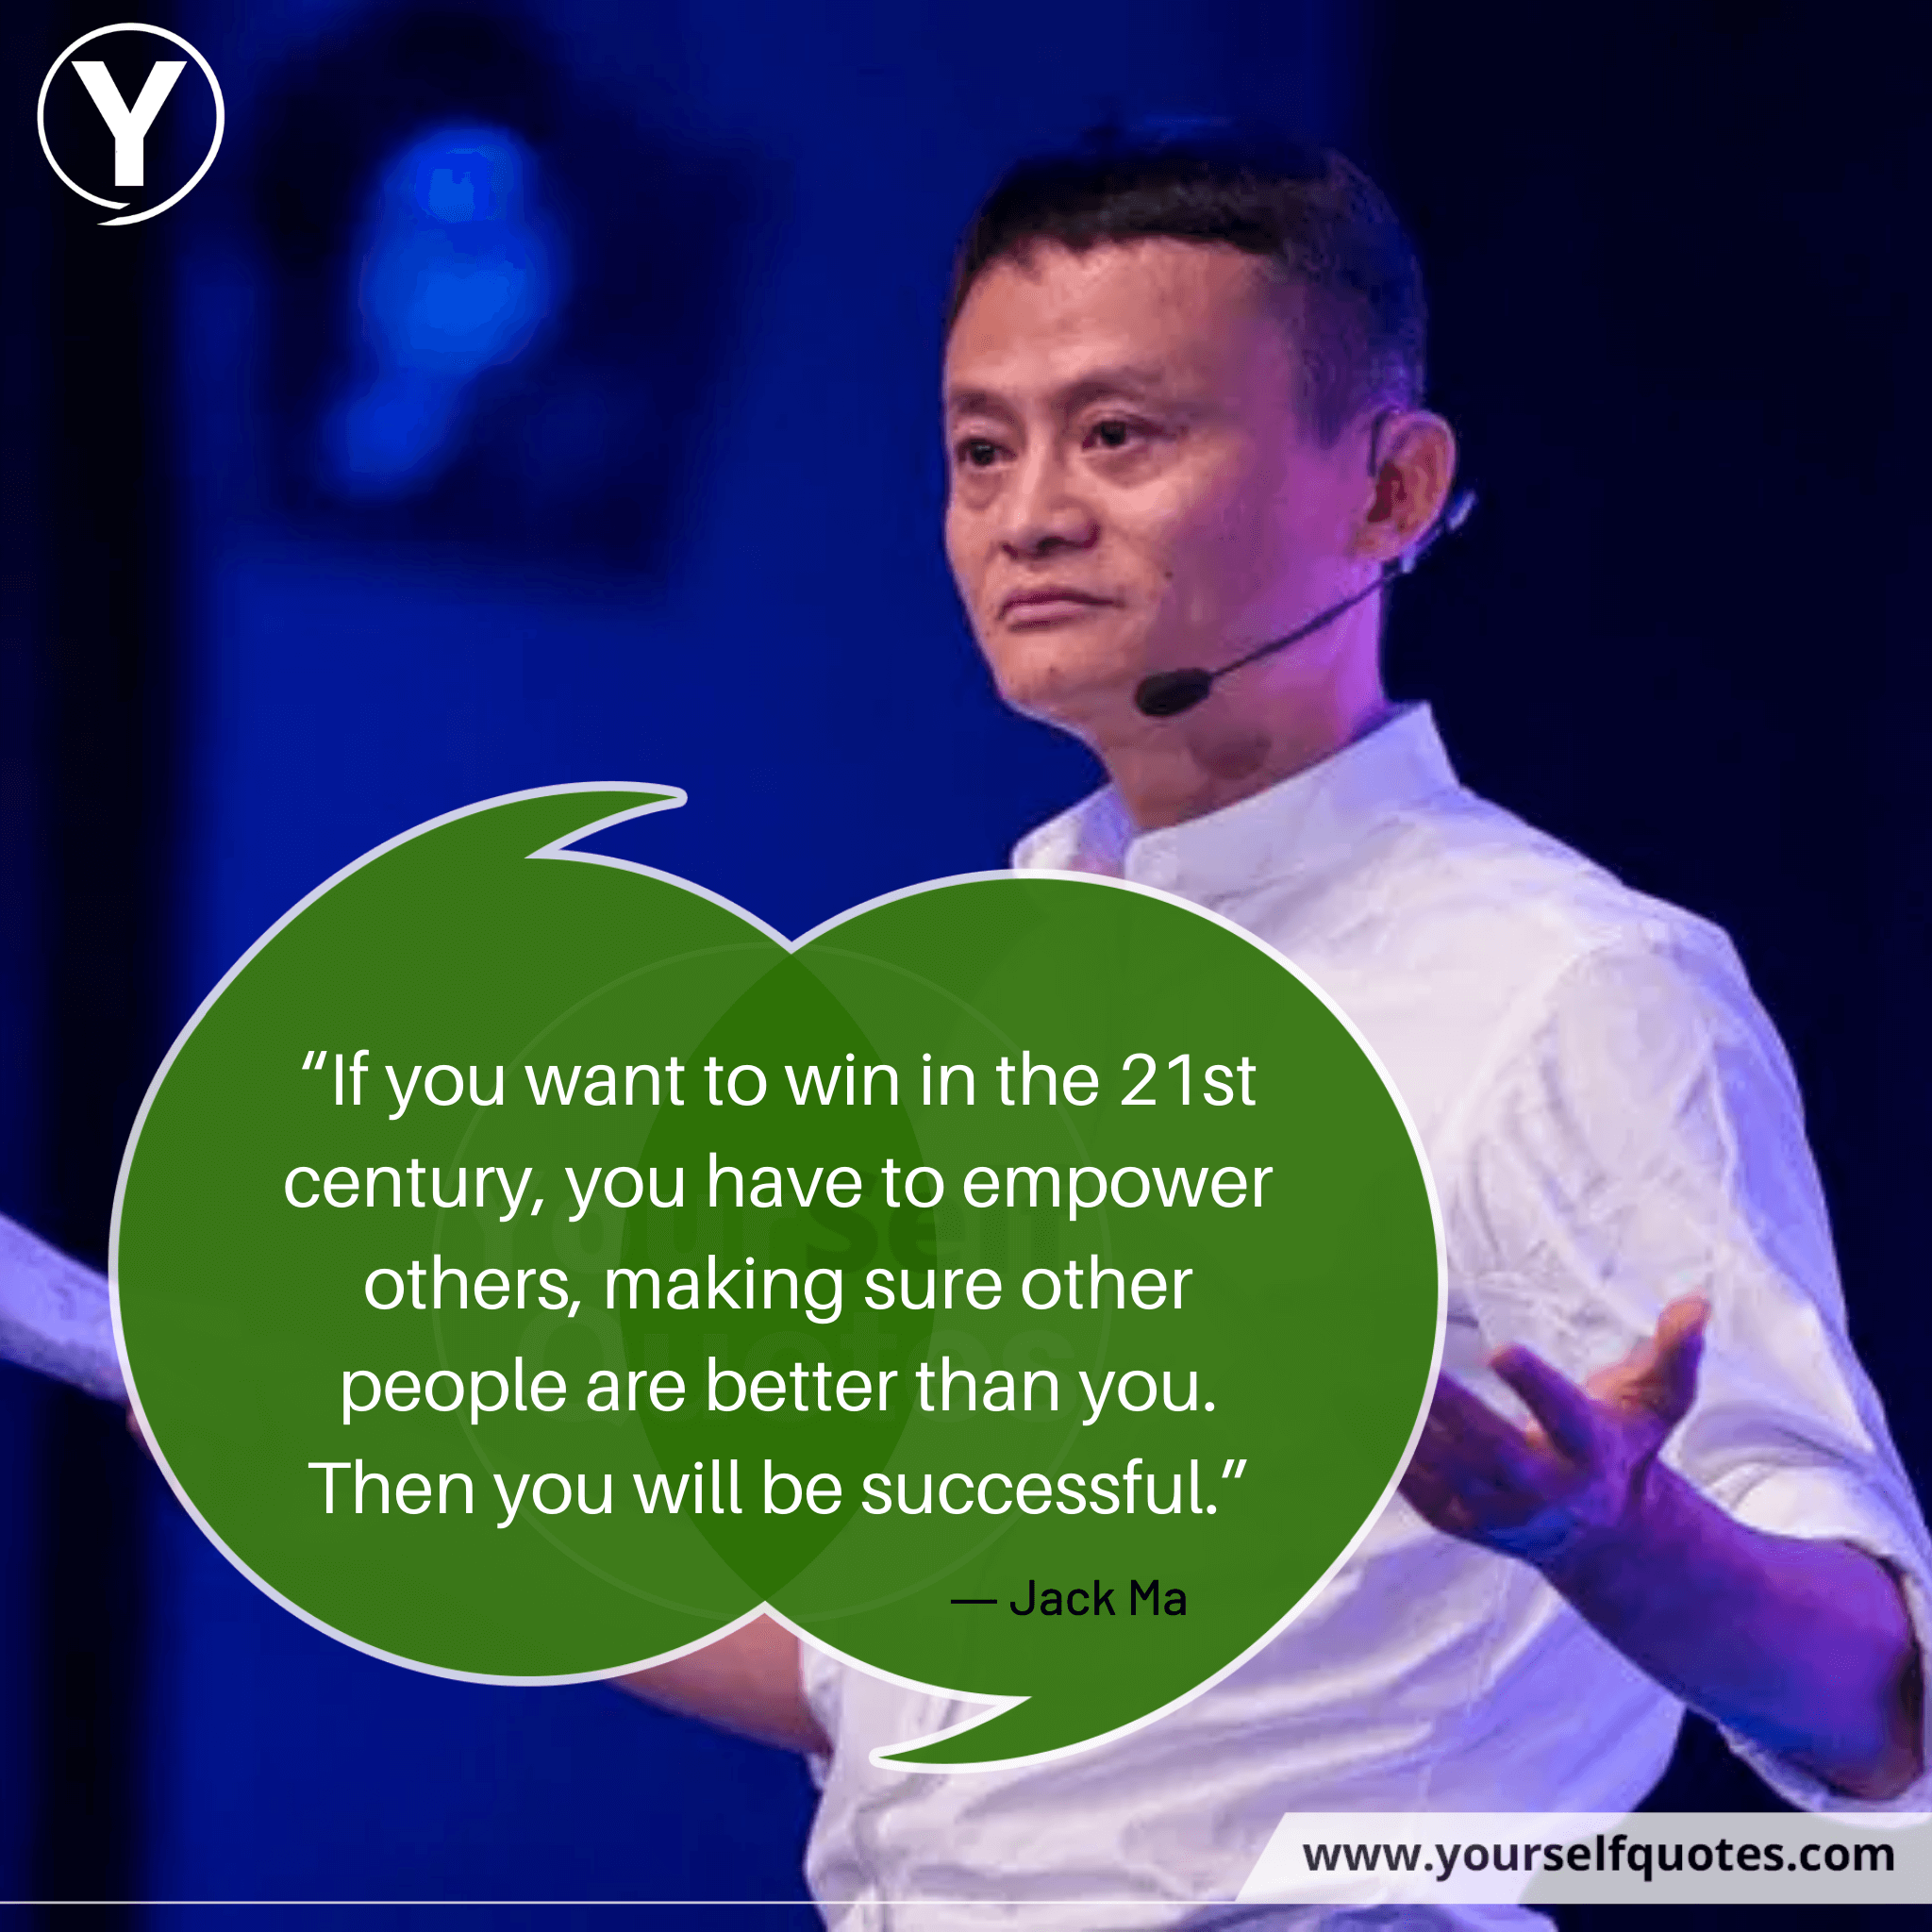 Jack Ma Successful Quotes